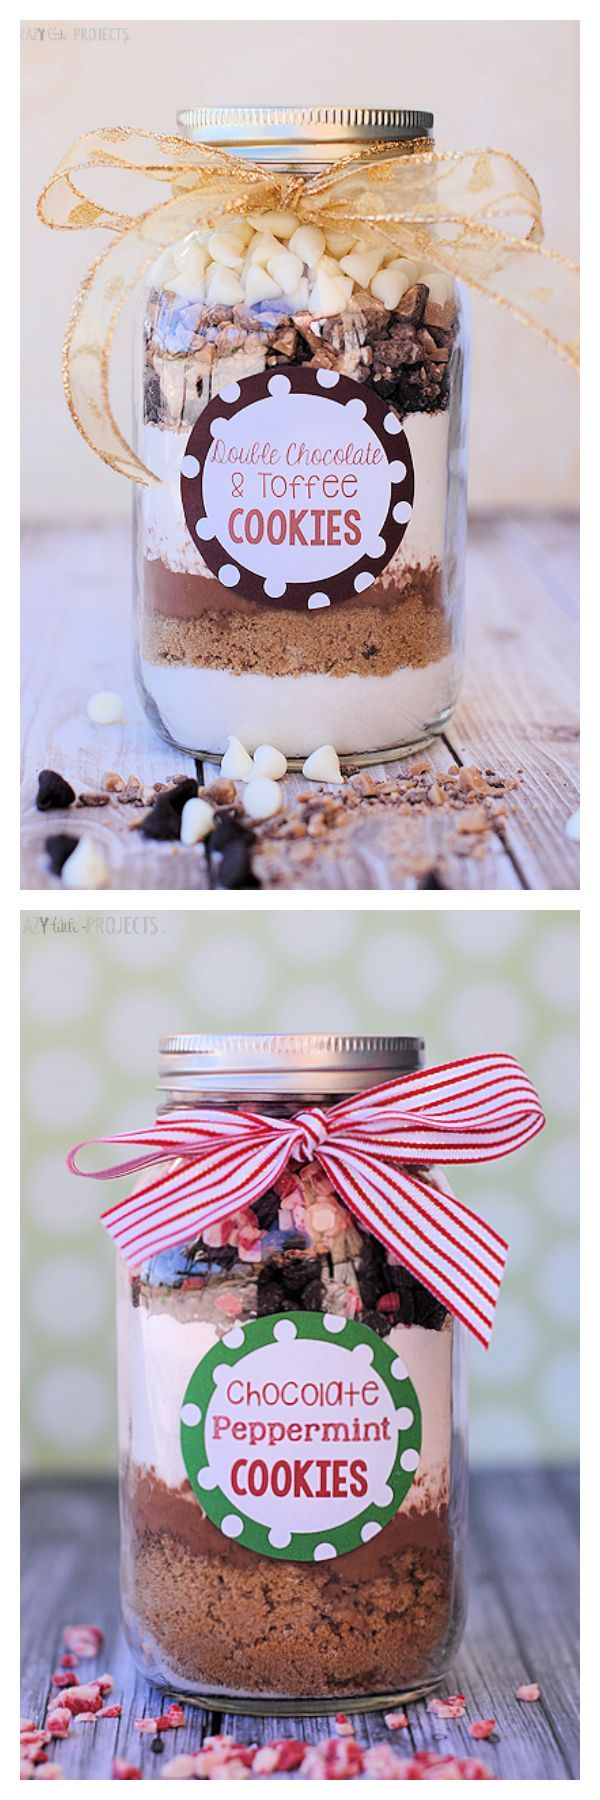 Homemade holiday gifts                                                                                                                                                                                 More